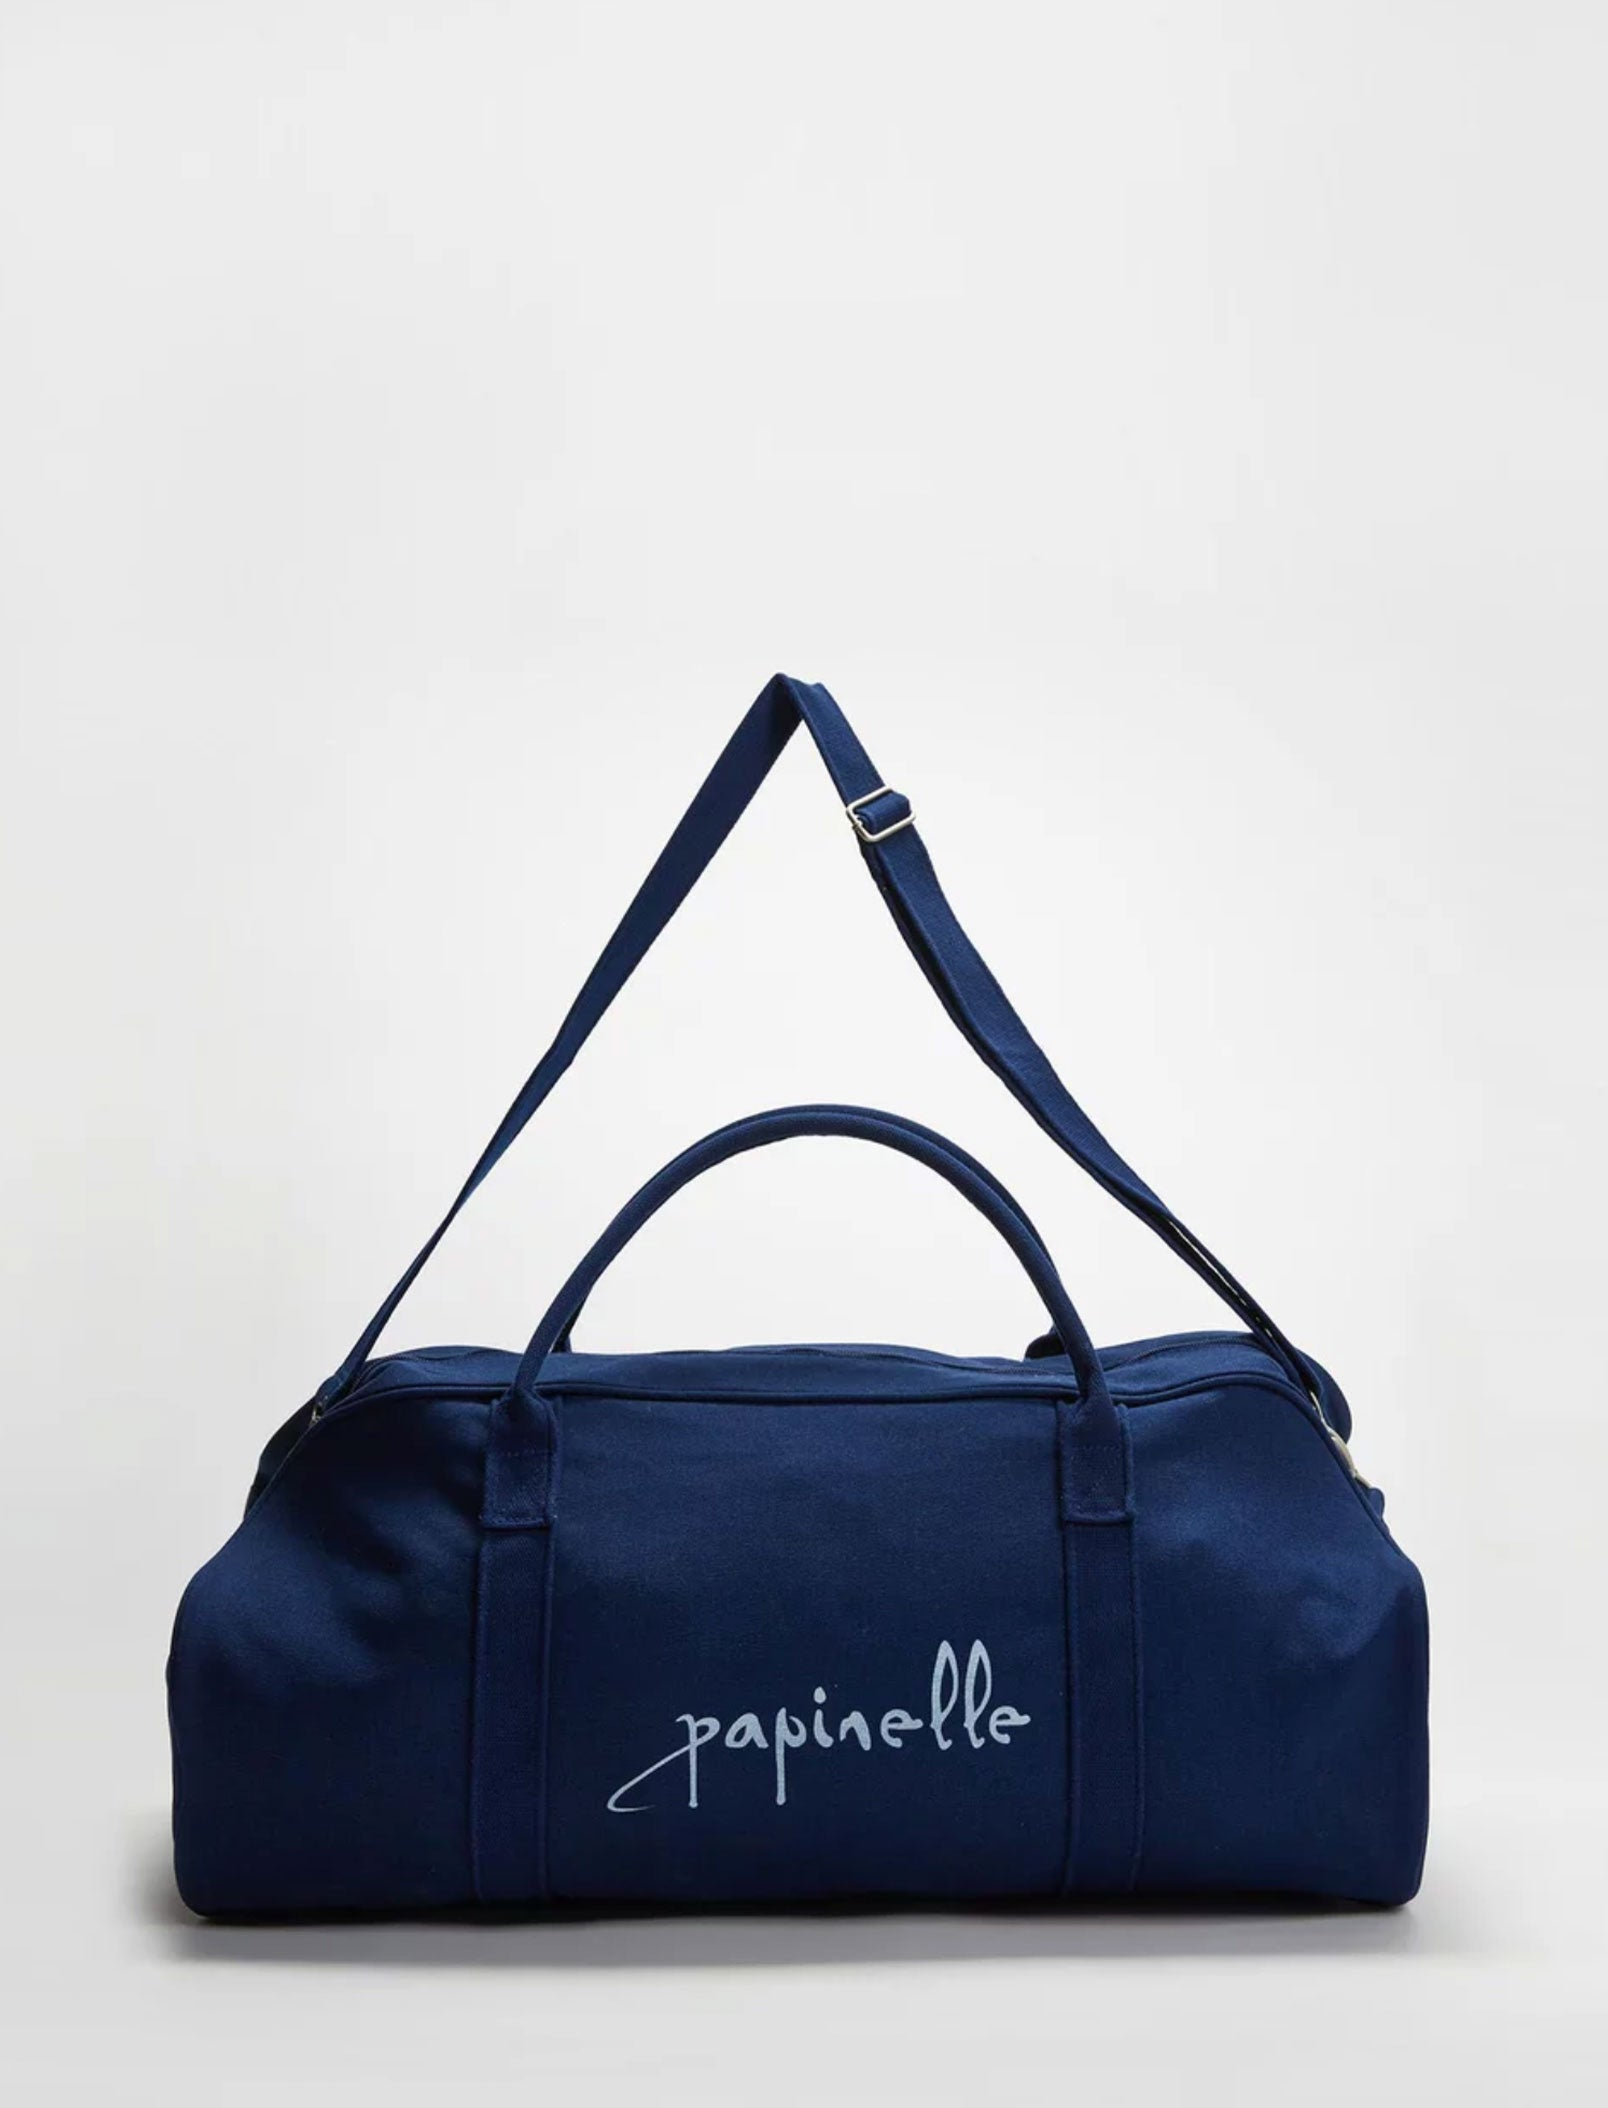 2 FOR $90 - WEEKEND BAG IN NAVY